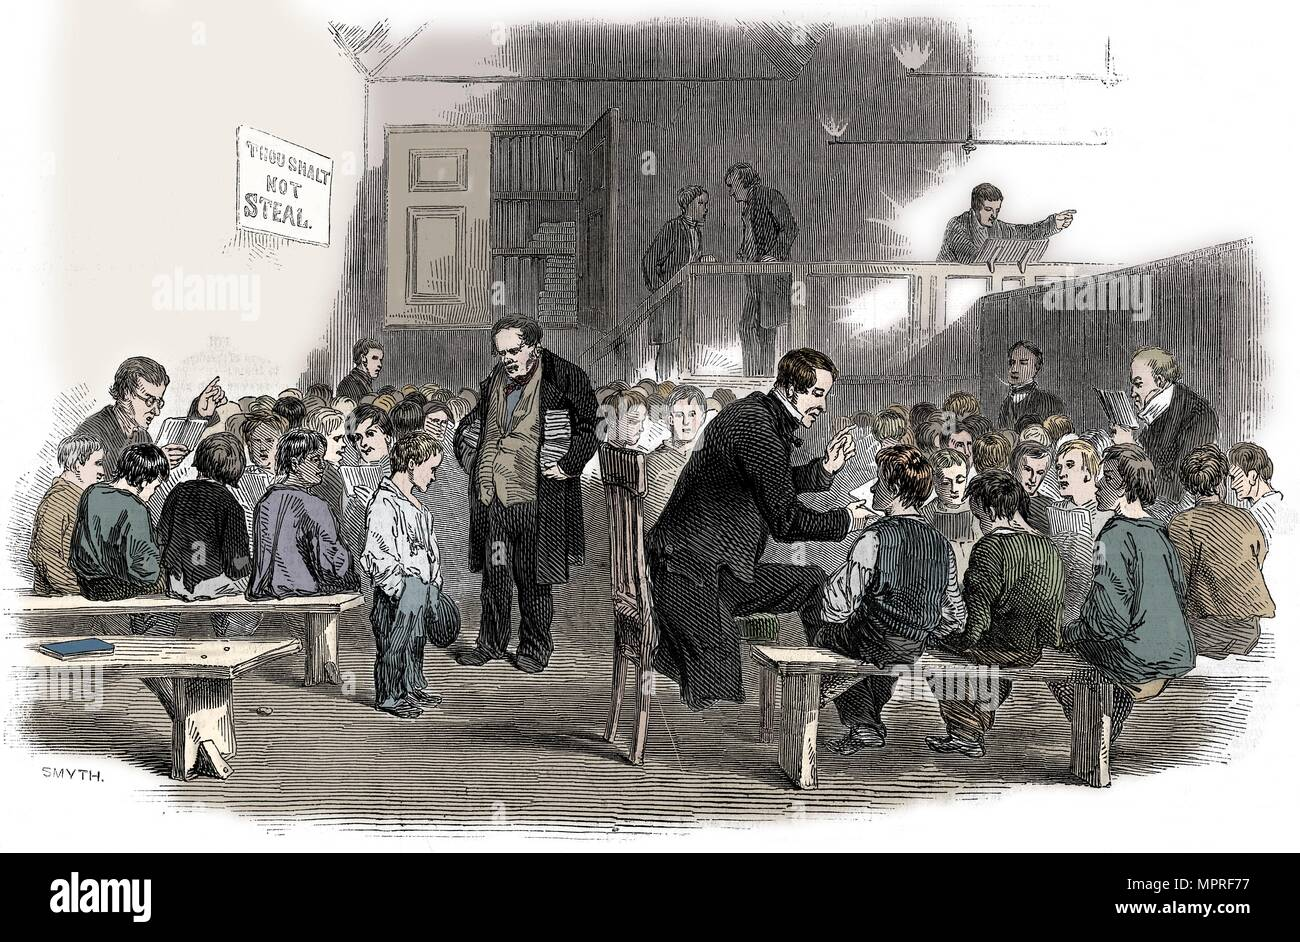 Teaching boys to read in the Ragged School Union school, Lambeth, London, 1868. Artist: Unknown. - Stock Image